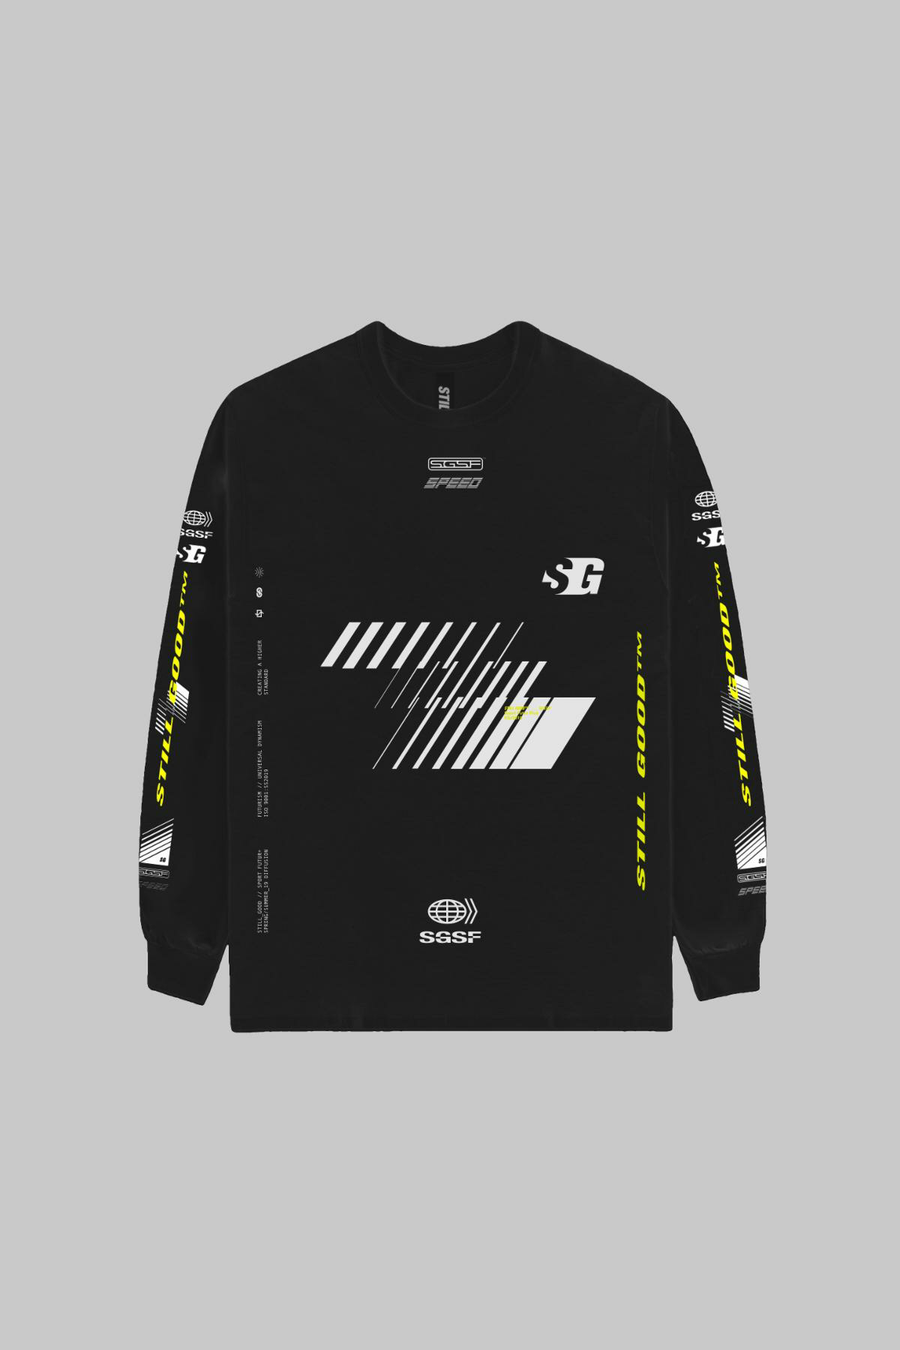 Vision L/S Tee Black / XS | Still Good